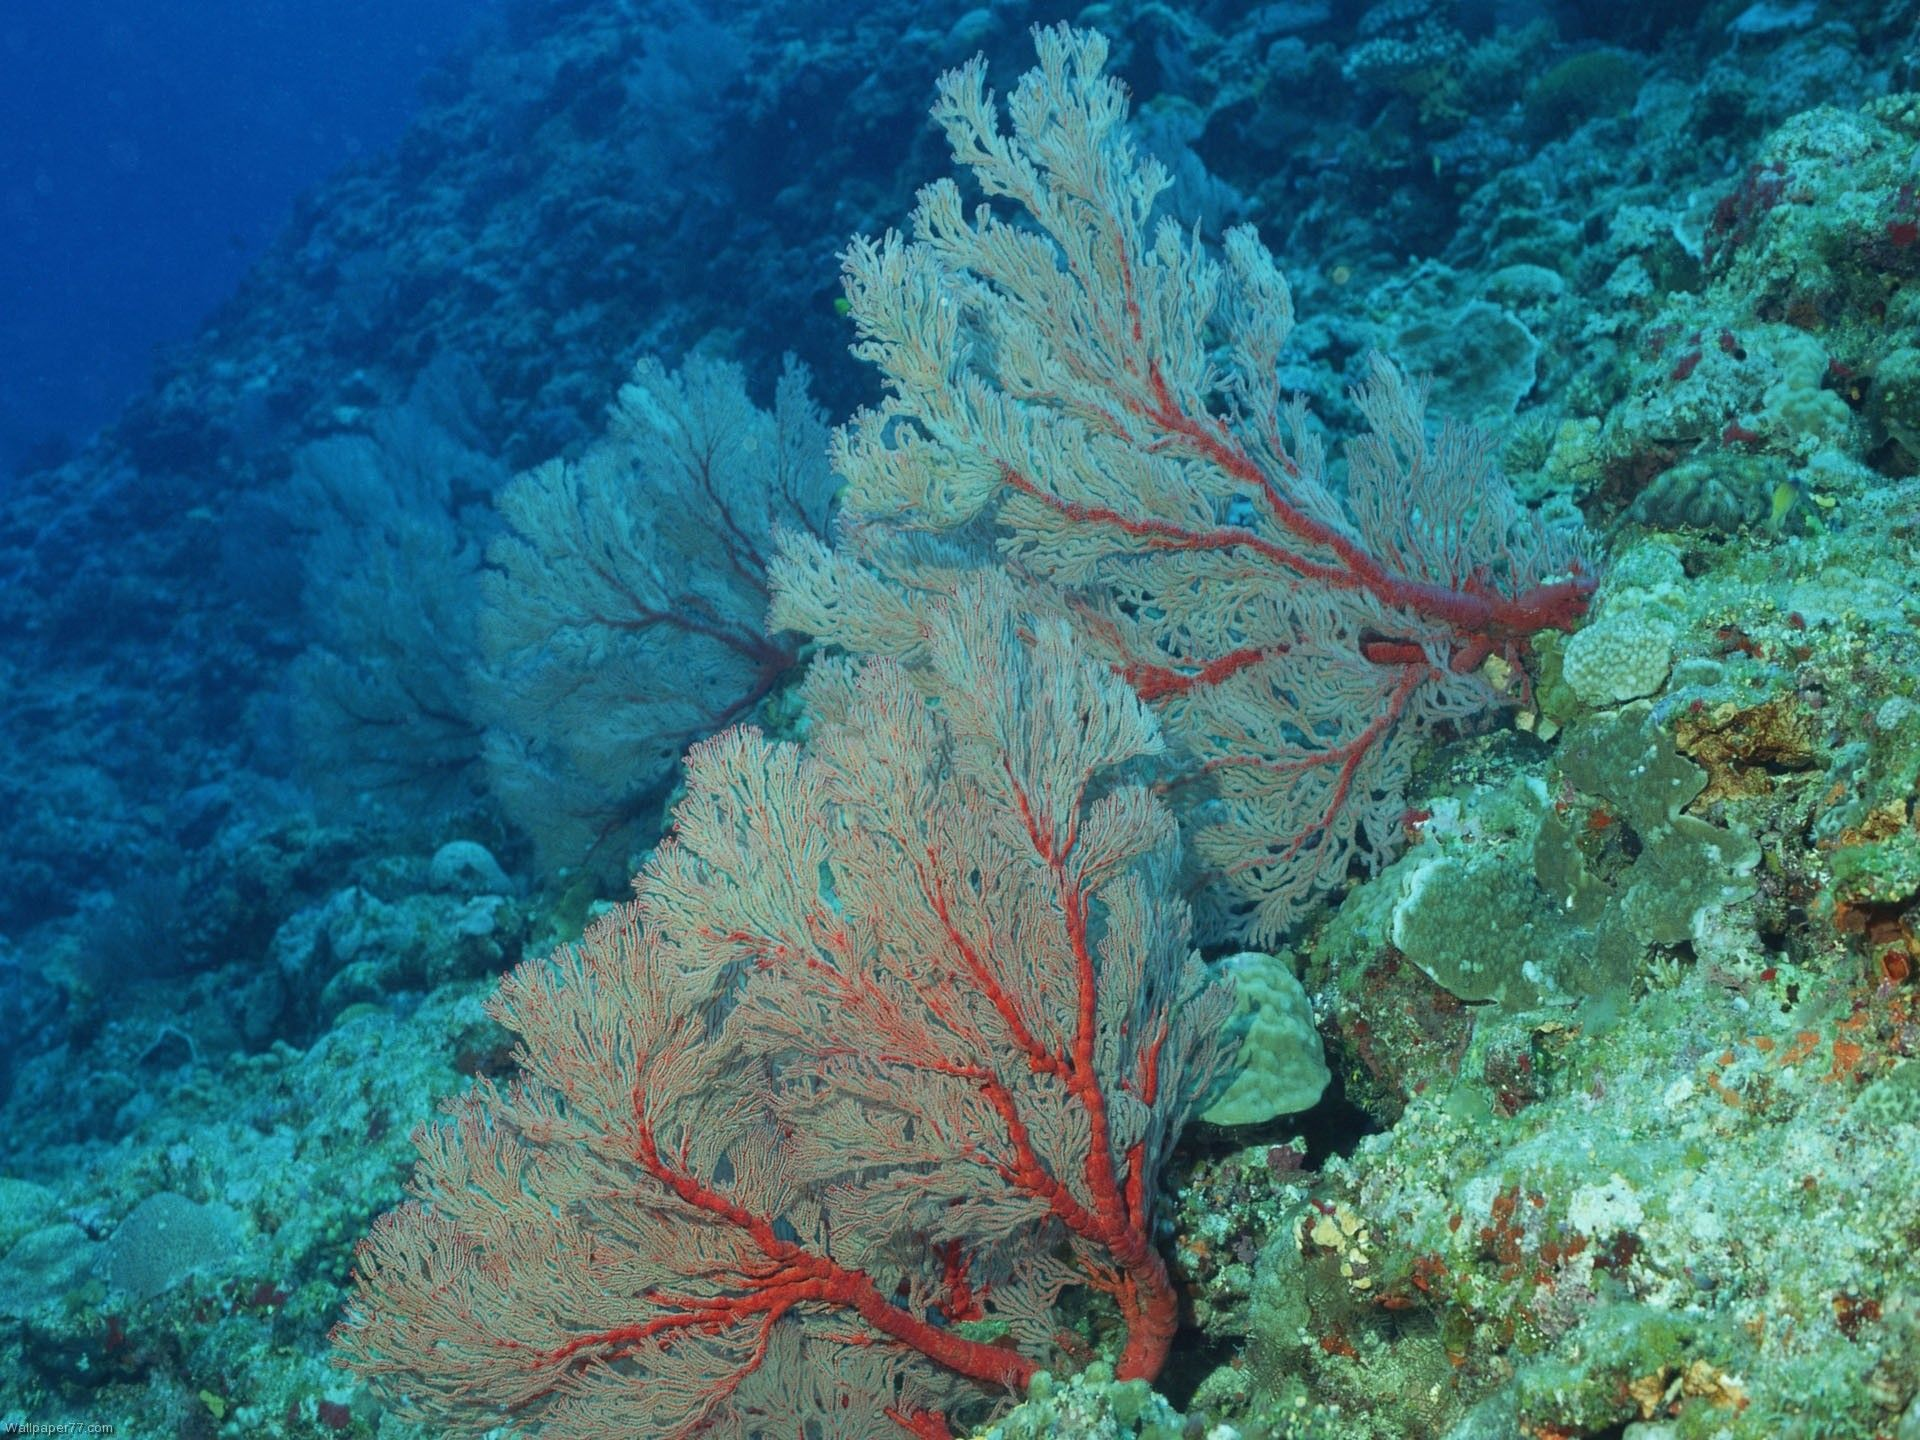 Sea coral sea coral tree underwater sea ocean water coral wallpapers 1920x1440 sota el - Sea coral wallpaper ...